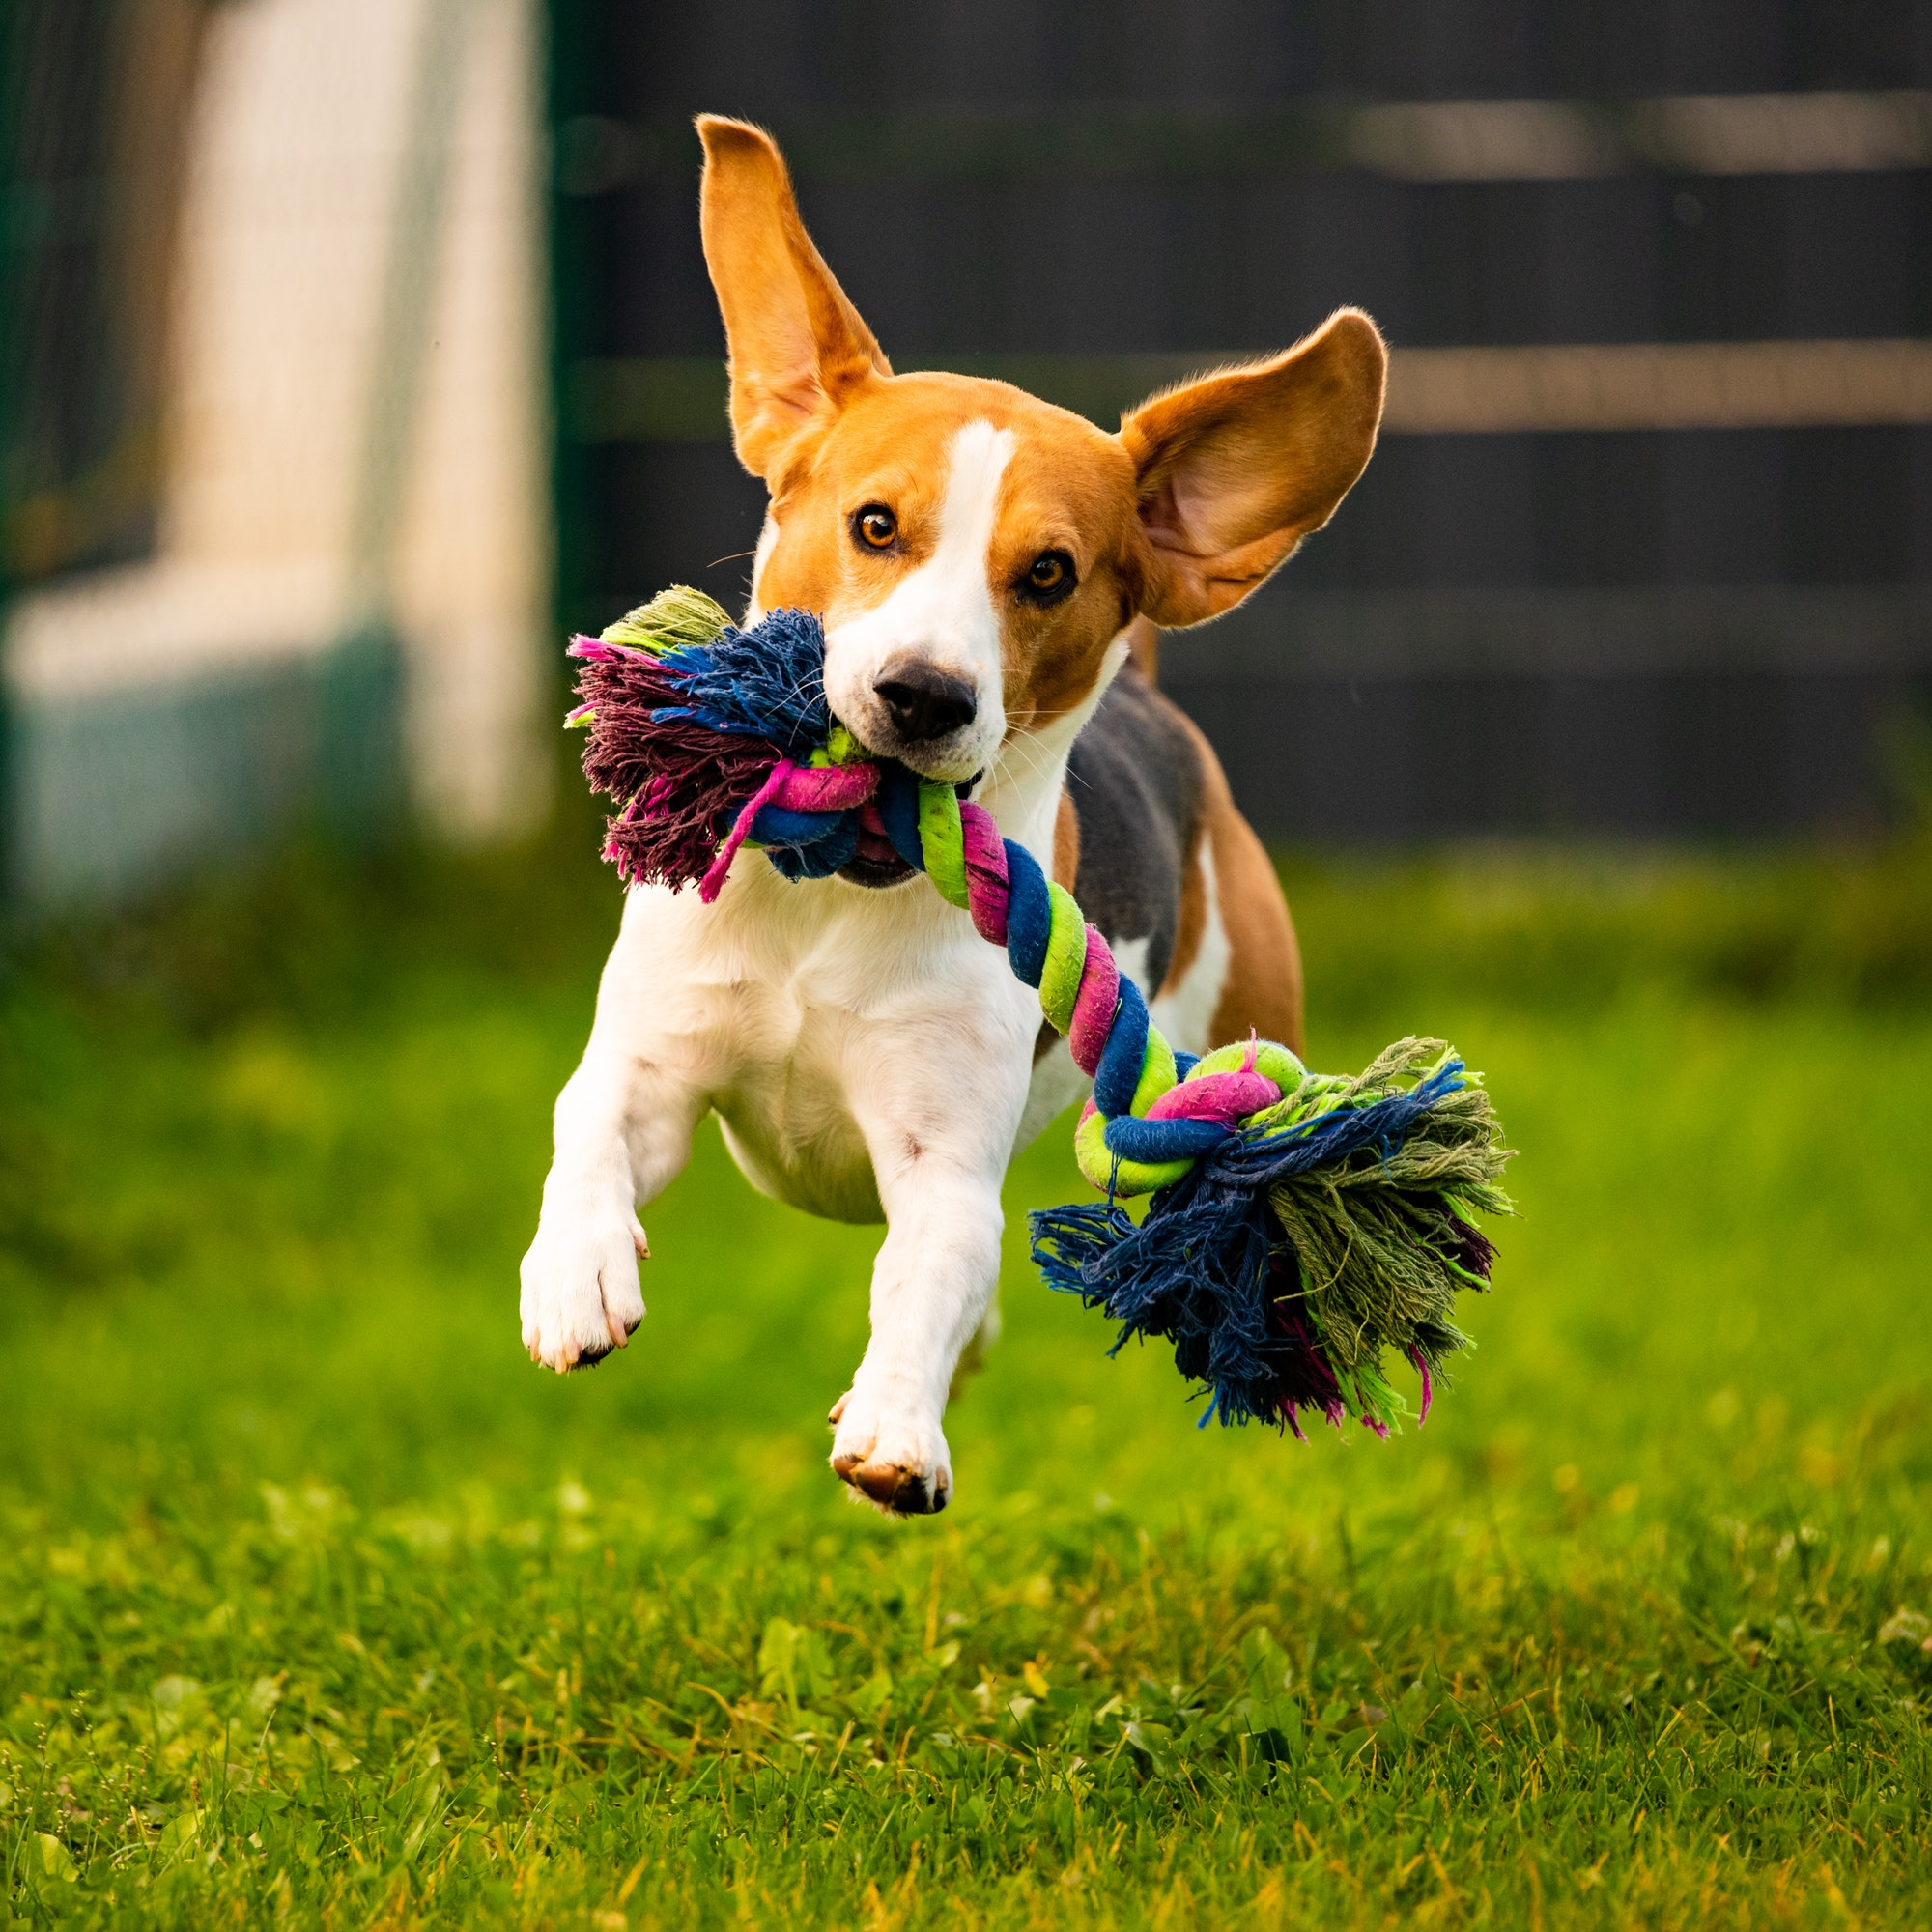 Beagle dog jumping and running with a toy towards the camera